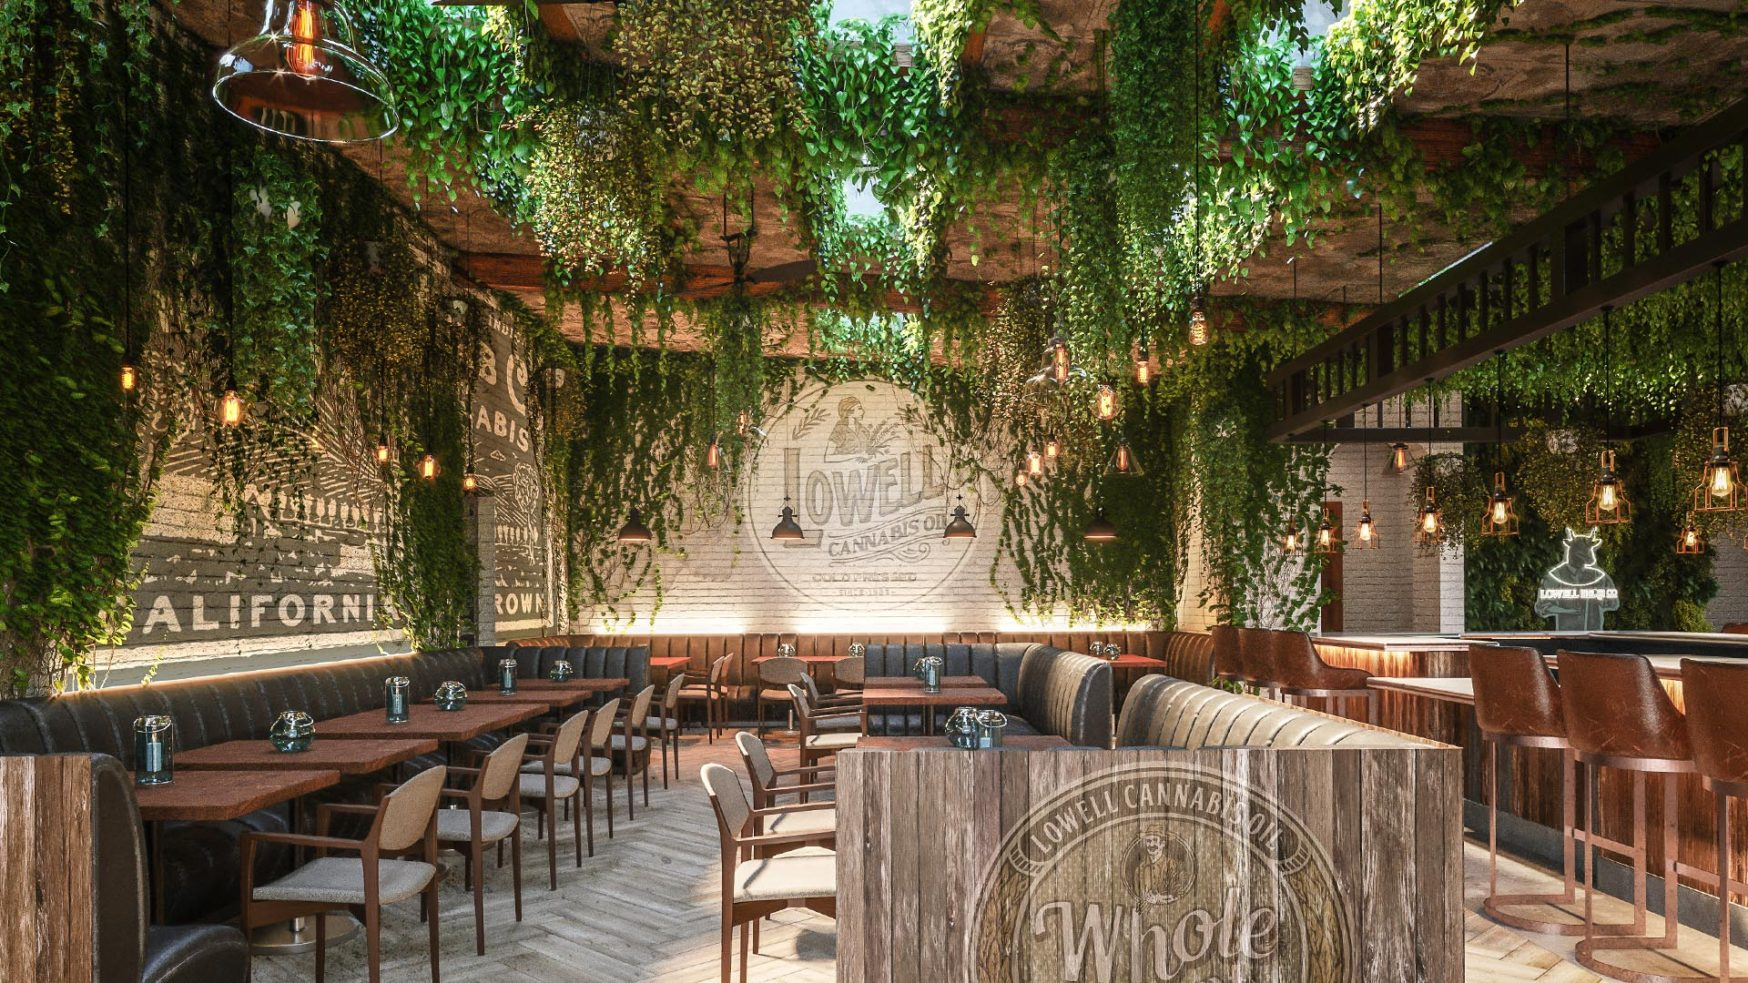 Flowertown Americas first cannabis cafe opens in West Hollywood